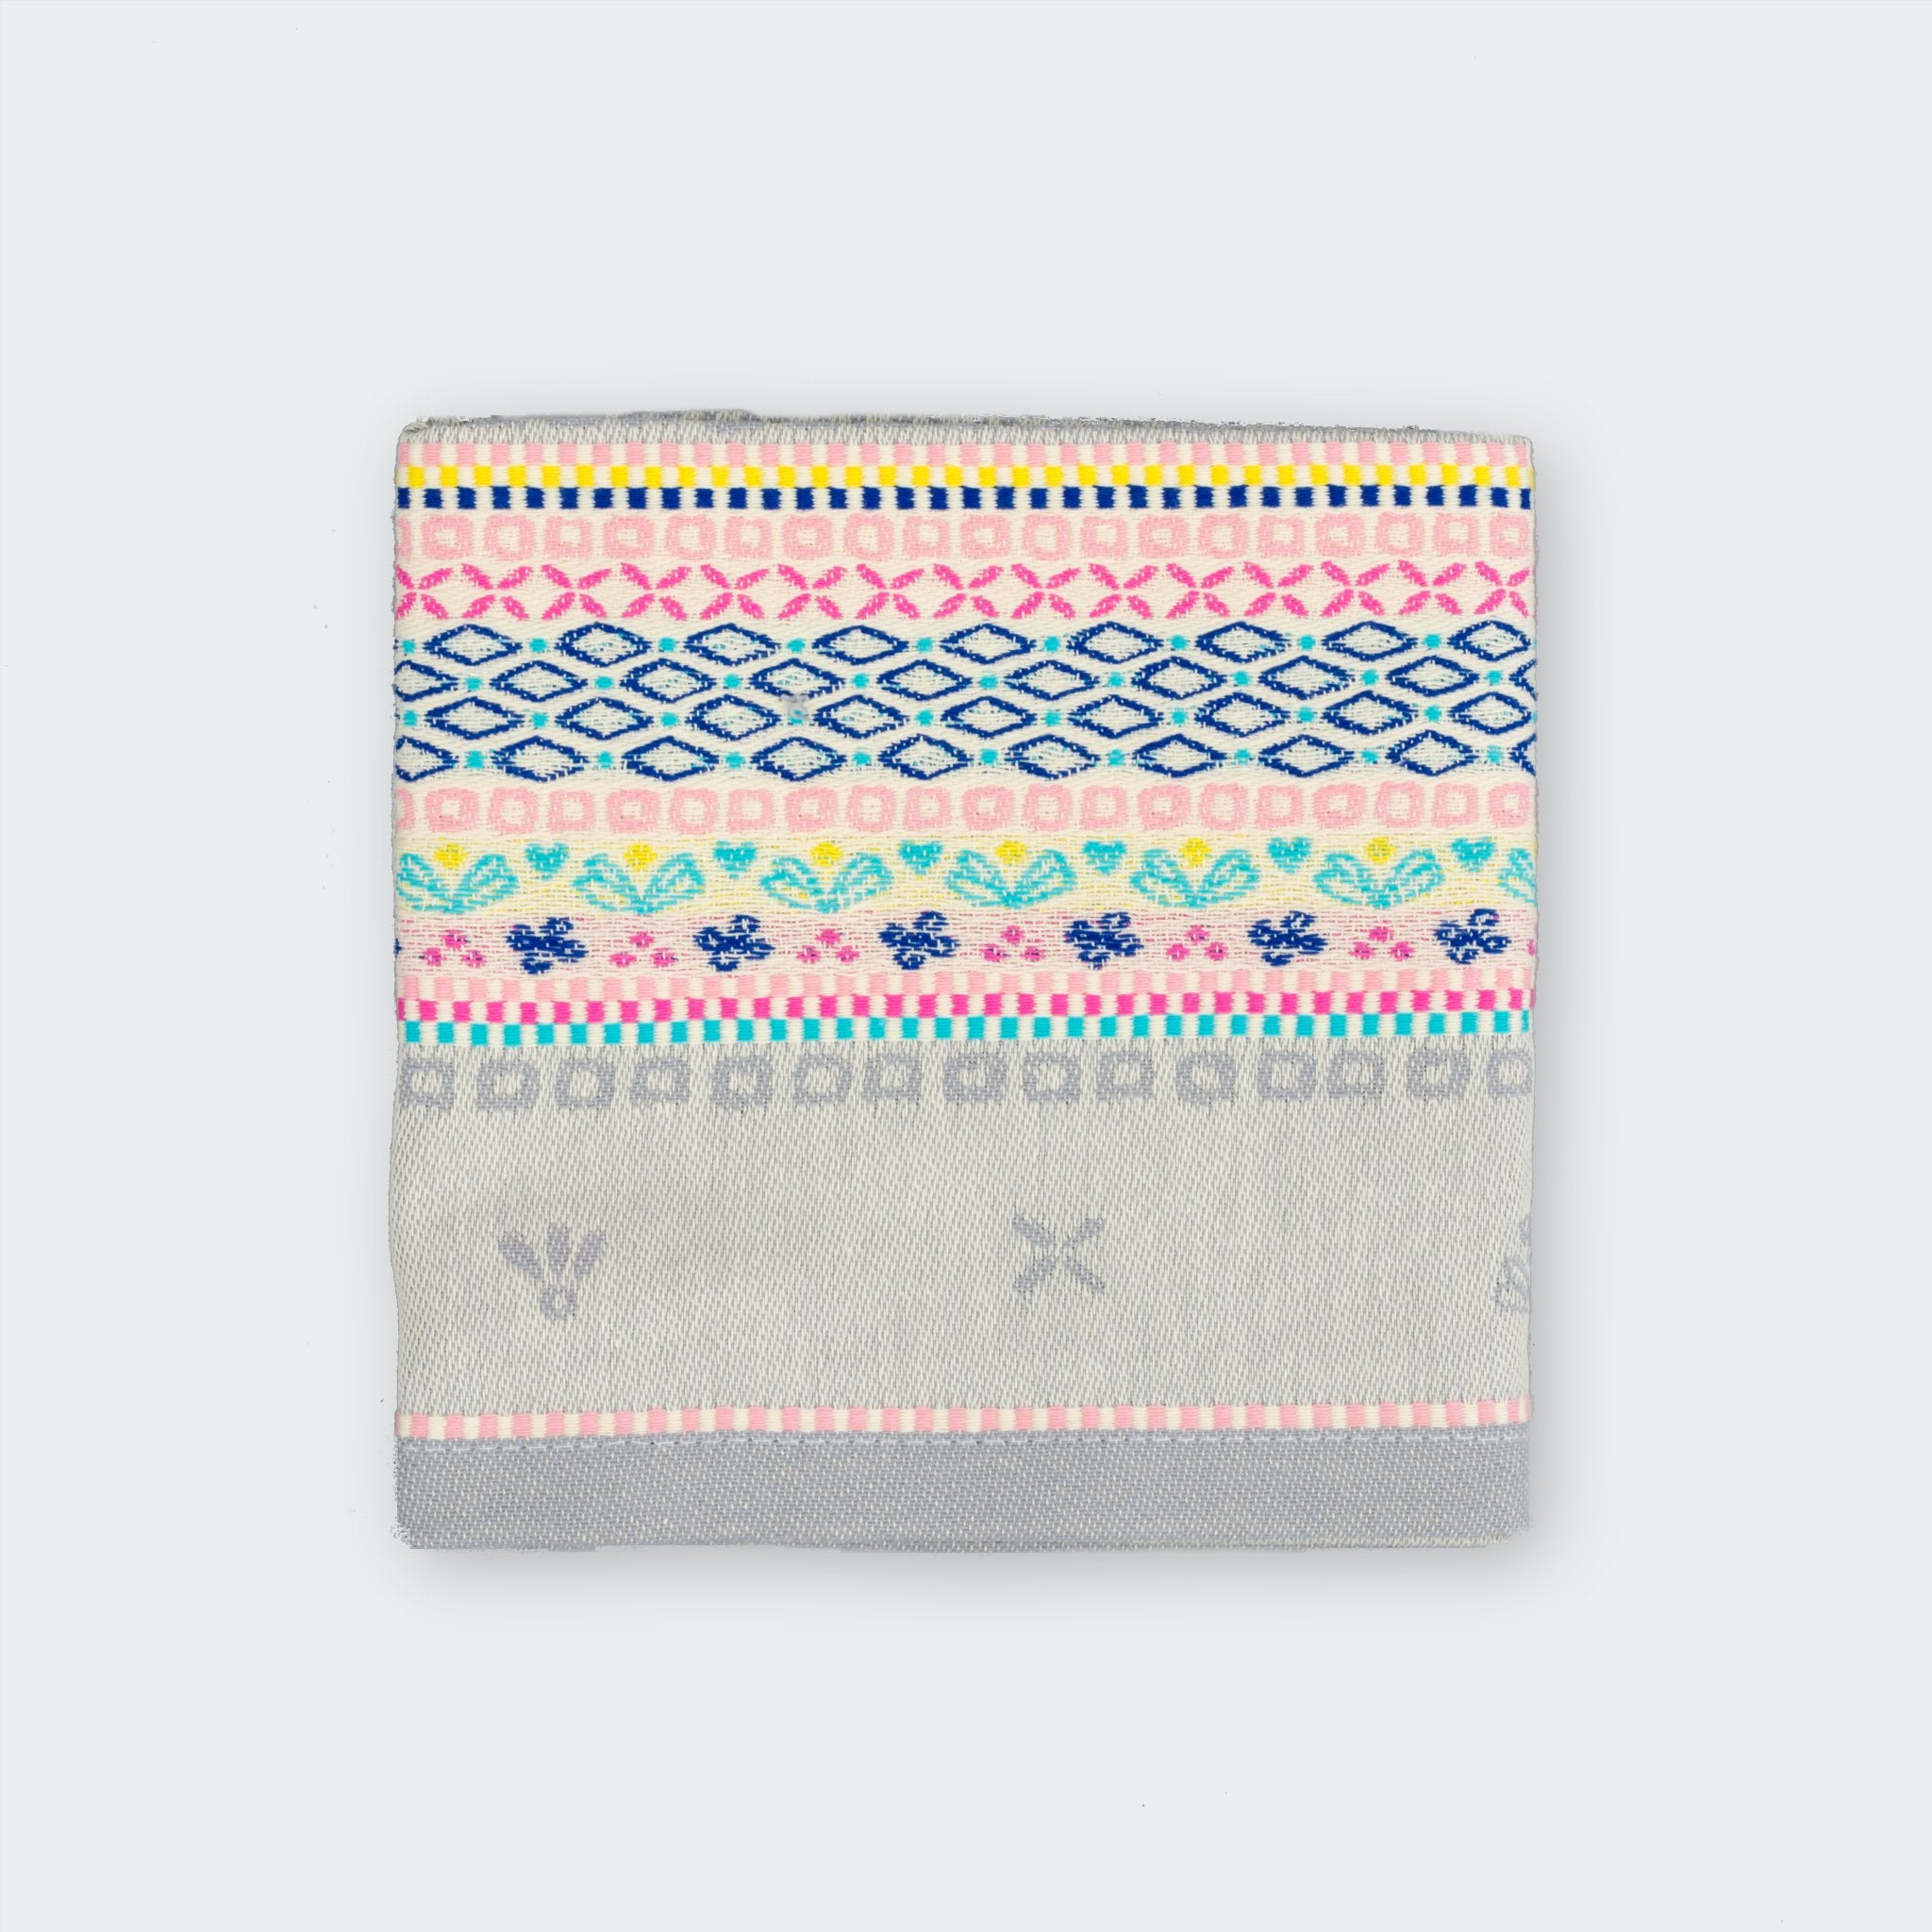 Grey premium woven cotton mutli-coloured patterned teatowel